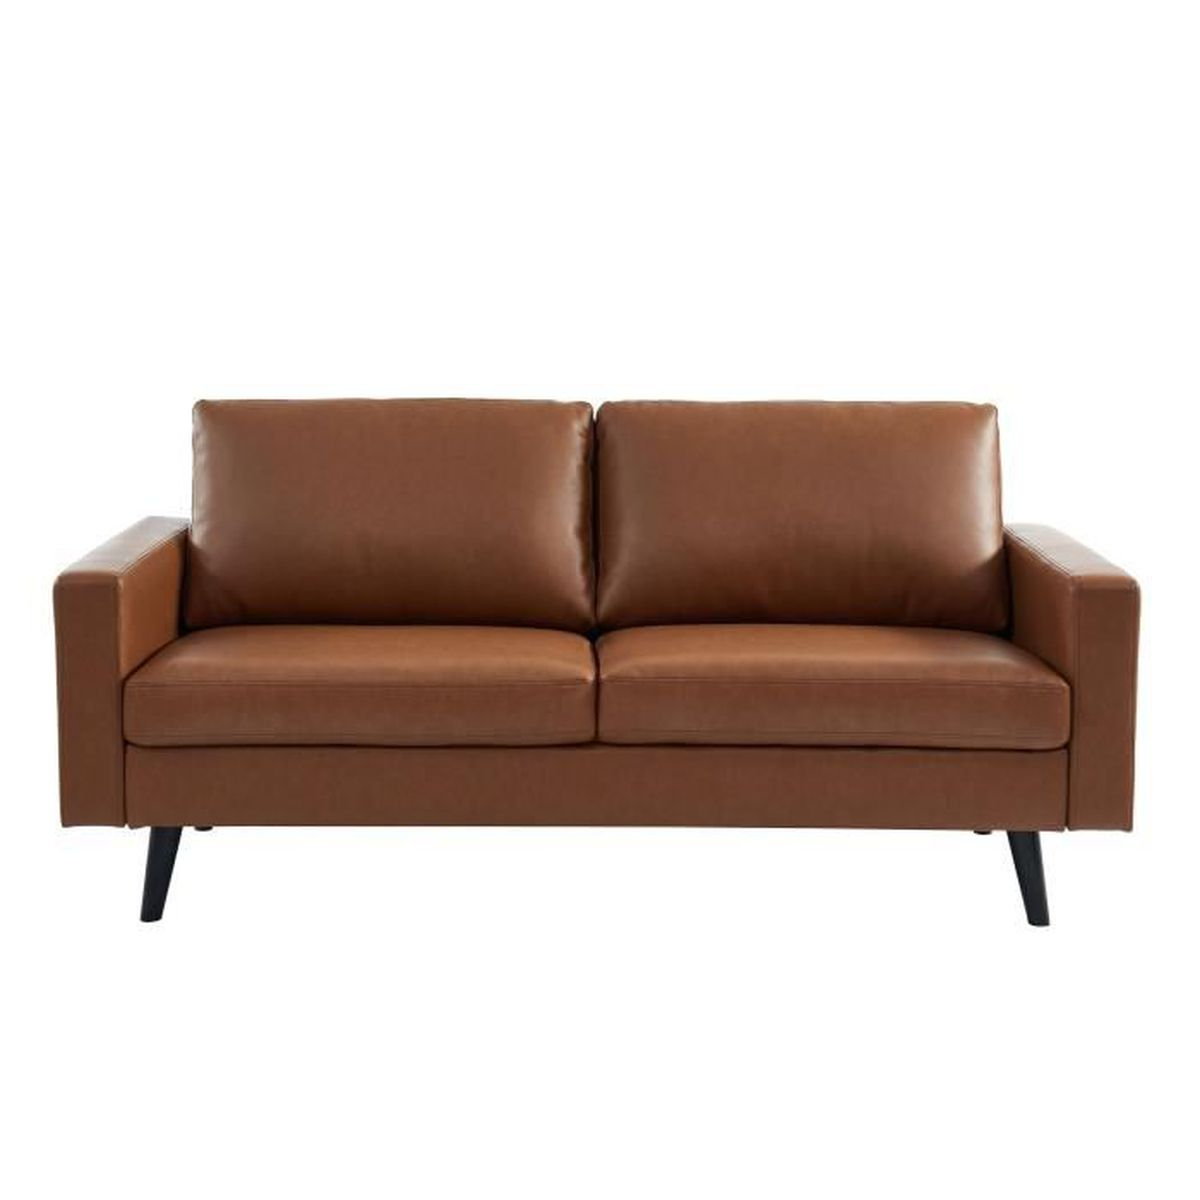 CANAPÉ - SOFA - DIVAN GASPARD Canapé droit 2/3 places - Simili Marron Ha